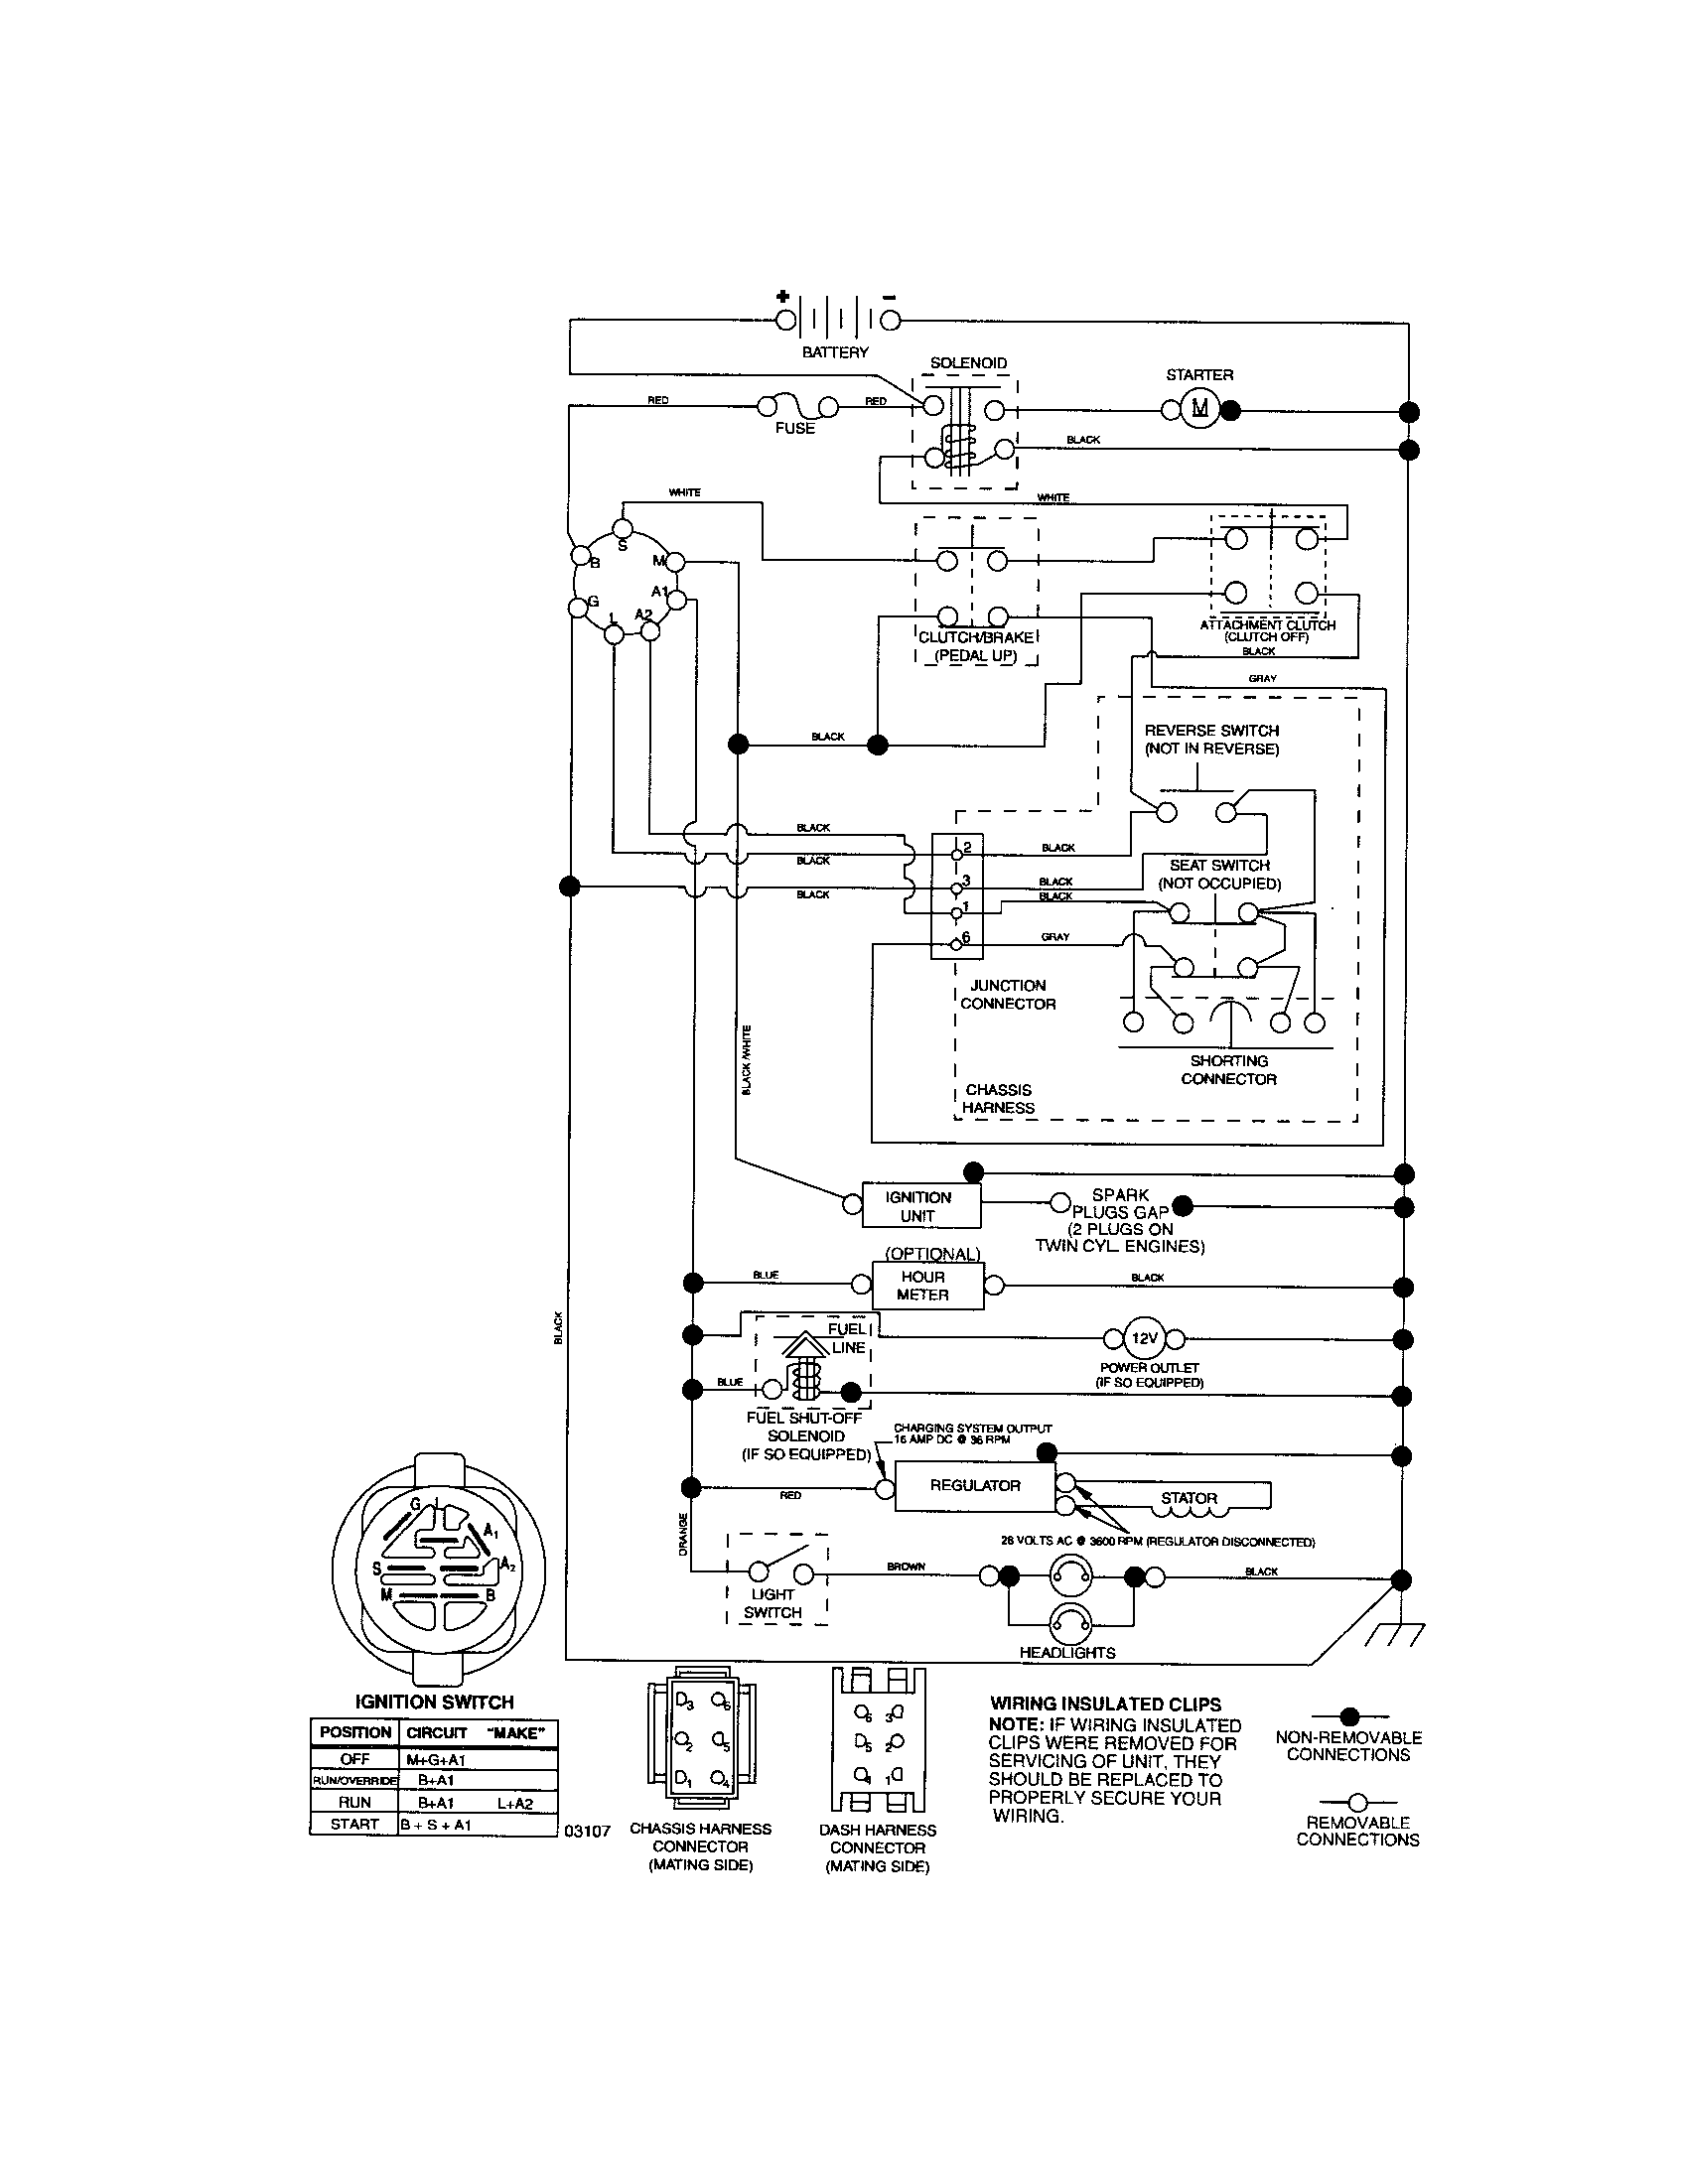 wiring diagram lawn tractor craftsman wiring diagrams craftsman riding mower electrical diagram wiring diagram craftsman wiring [ 1696 x 2200 Pixel ]